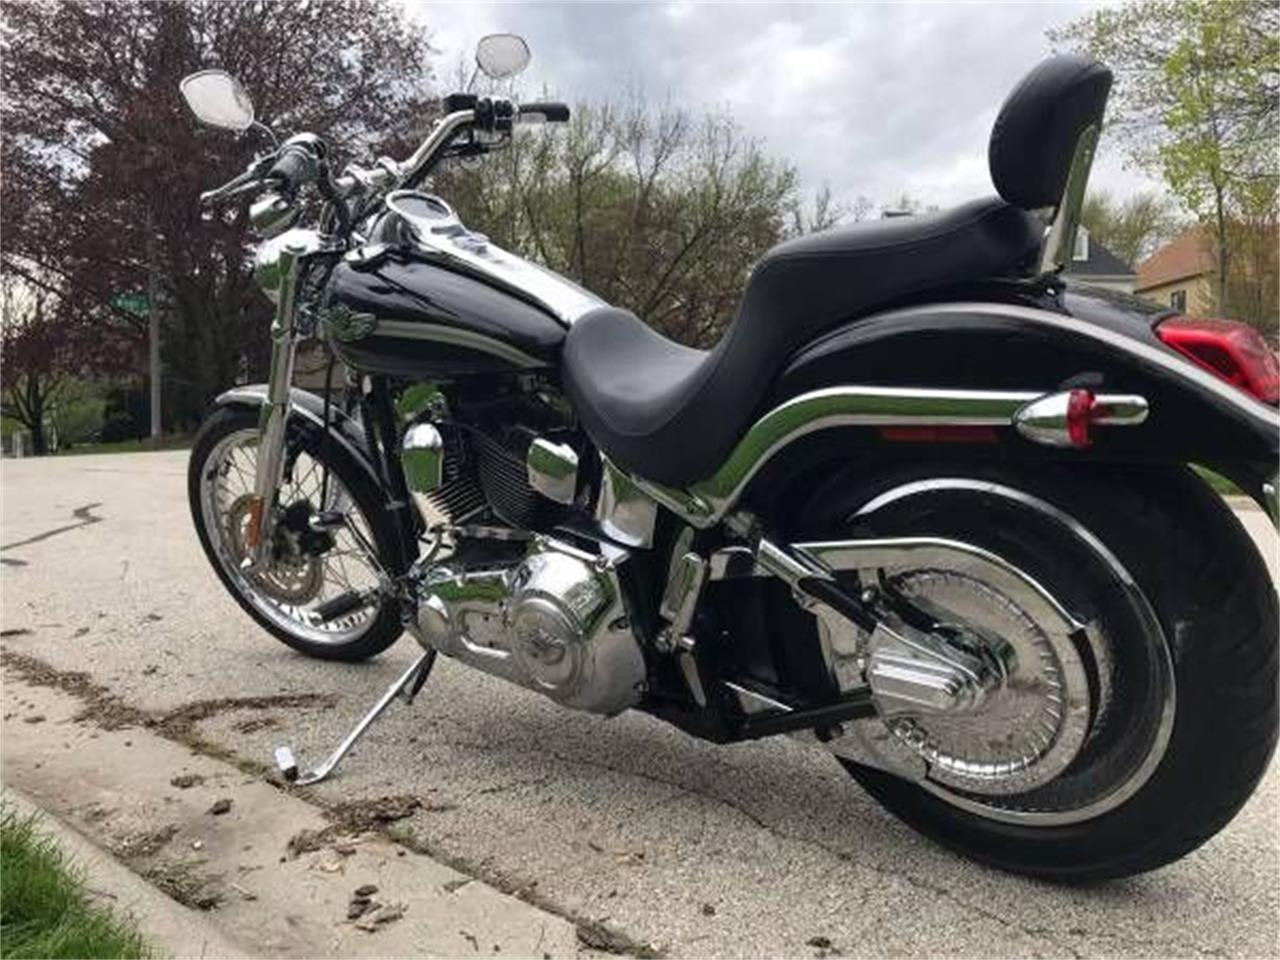 2003 Harley-Davidson Softail for sale in Cadillac, MI – photo 10